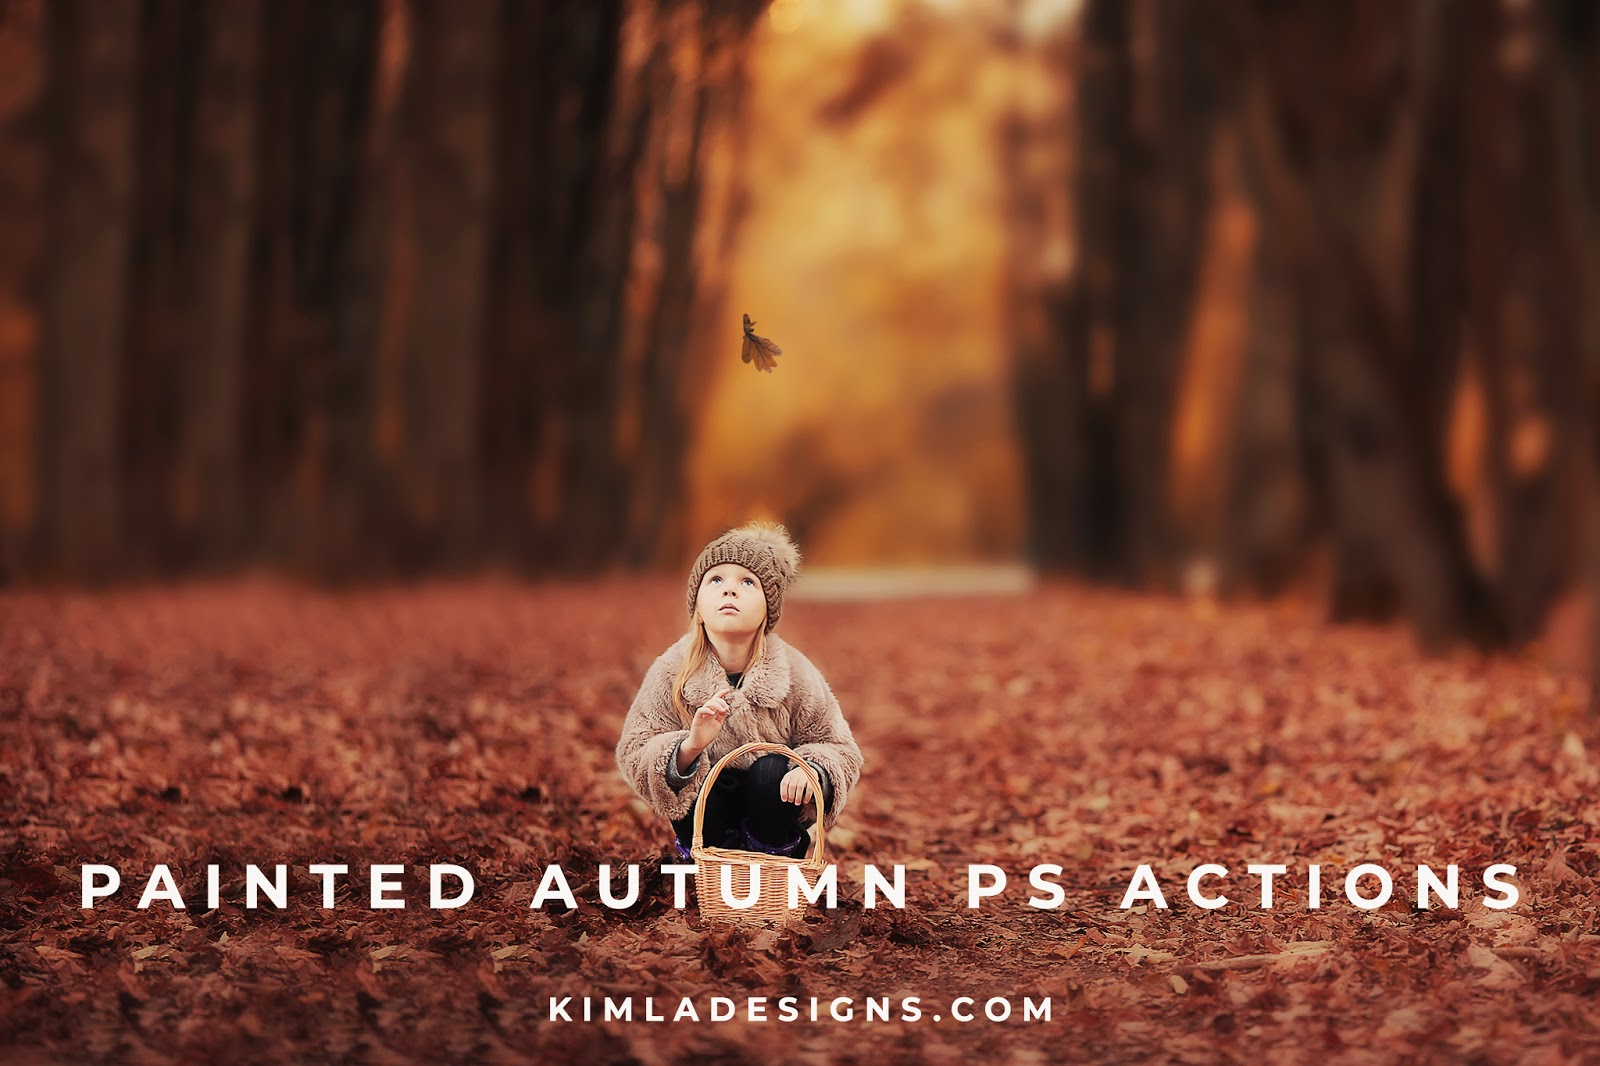 https://1.bp.blogspot.com/-HHWXNfeu6U0/W5FrweRSjAI/AAAAAAAAES8/Jq8bPiBi_0oBz4prlTOGw9k0BZoyp3ZOACLcBGAs/s1600/Painted-Autumn-PS-Actions-for-Photographers.jpg